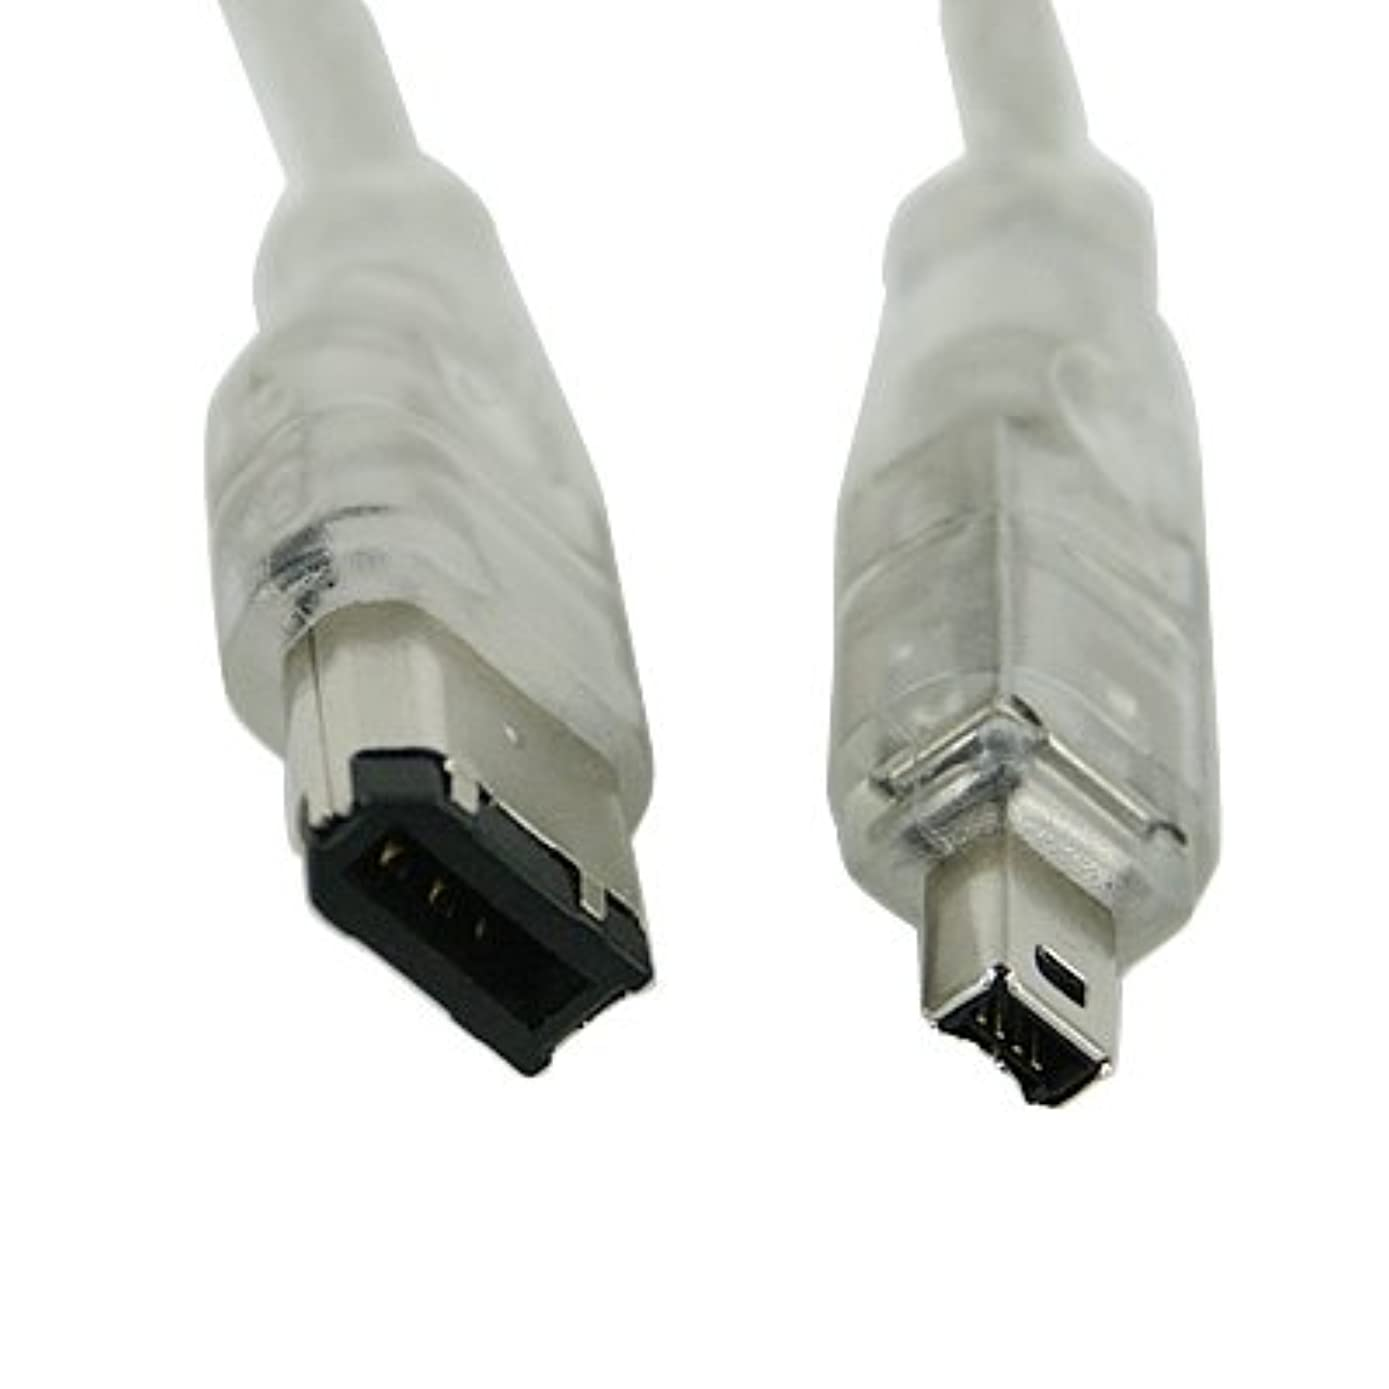 SANOXY Firewire DV Cable Camcorder for Canon Sony Sharp JVC